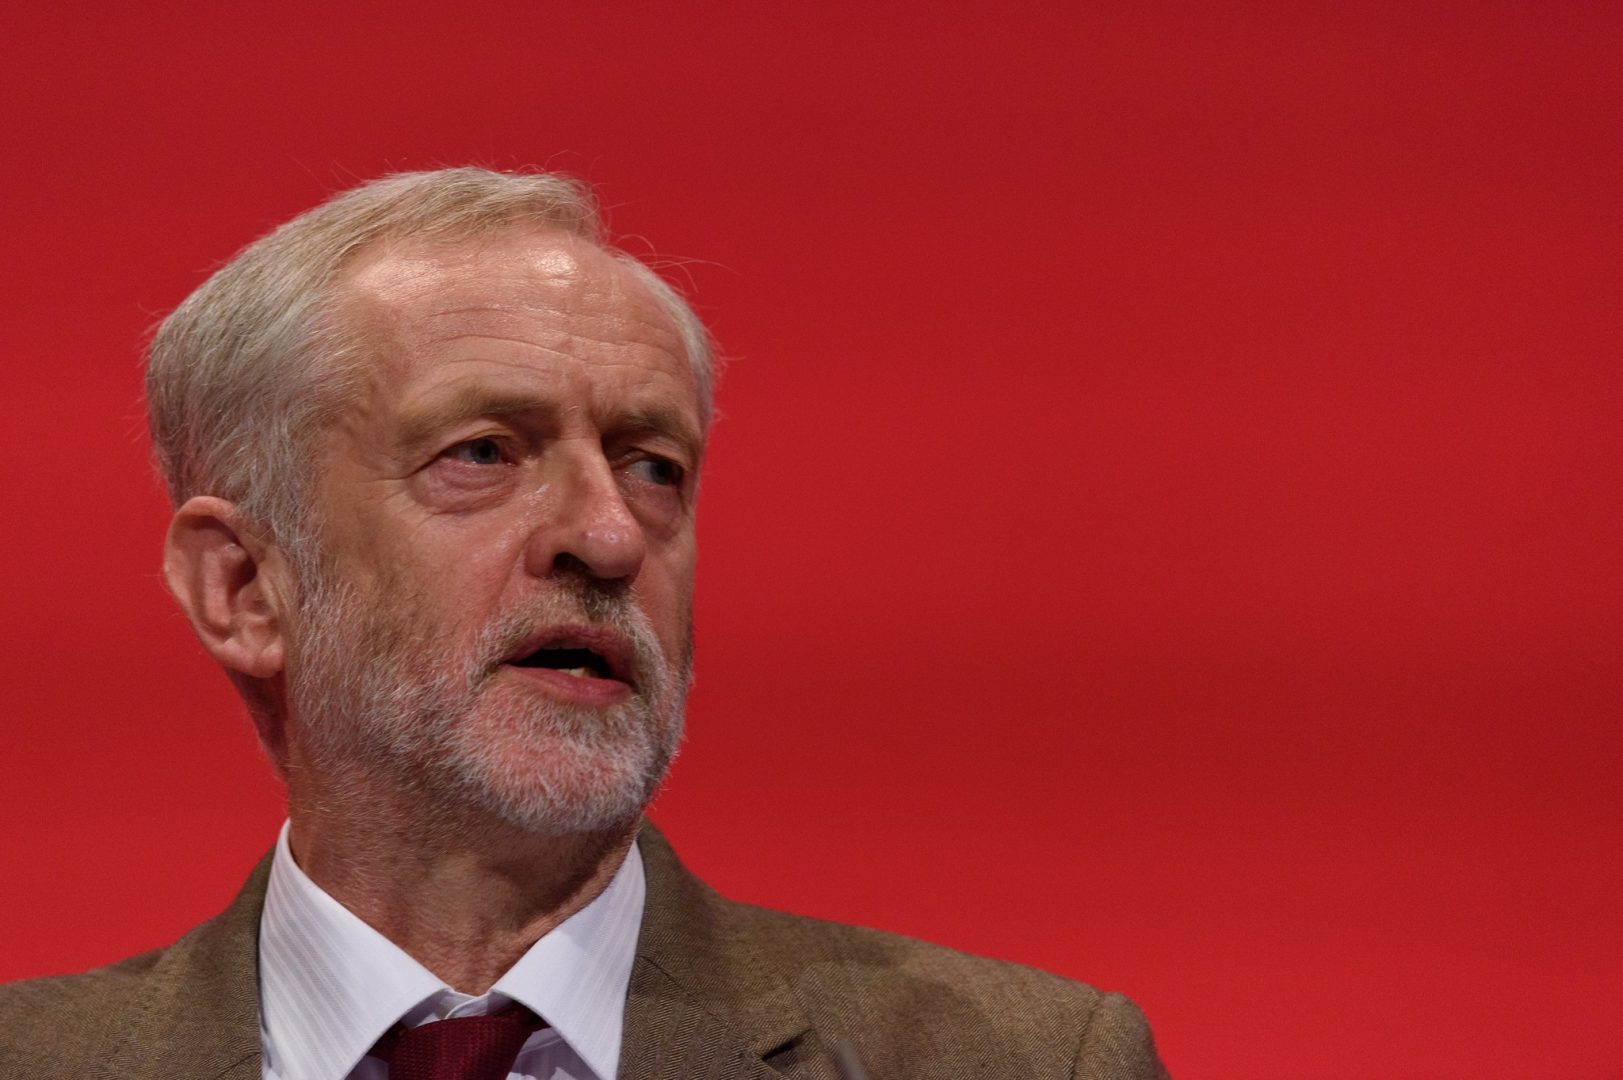 Labour leader Jeremy Corbyn could be what Adam Curtis longs for